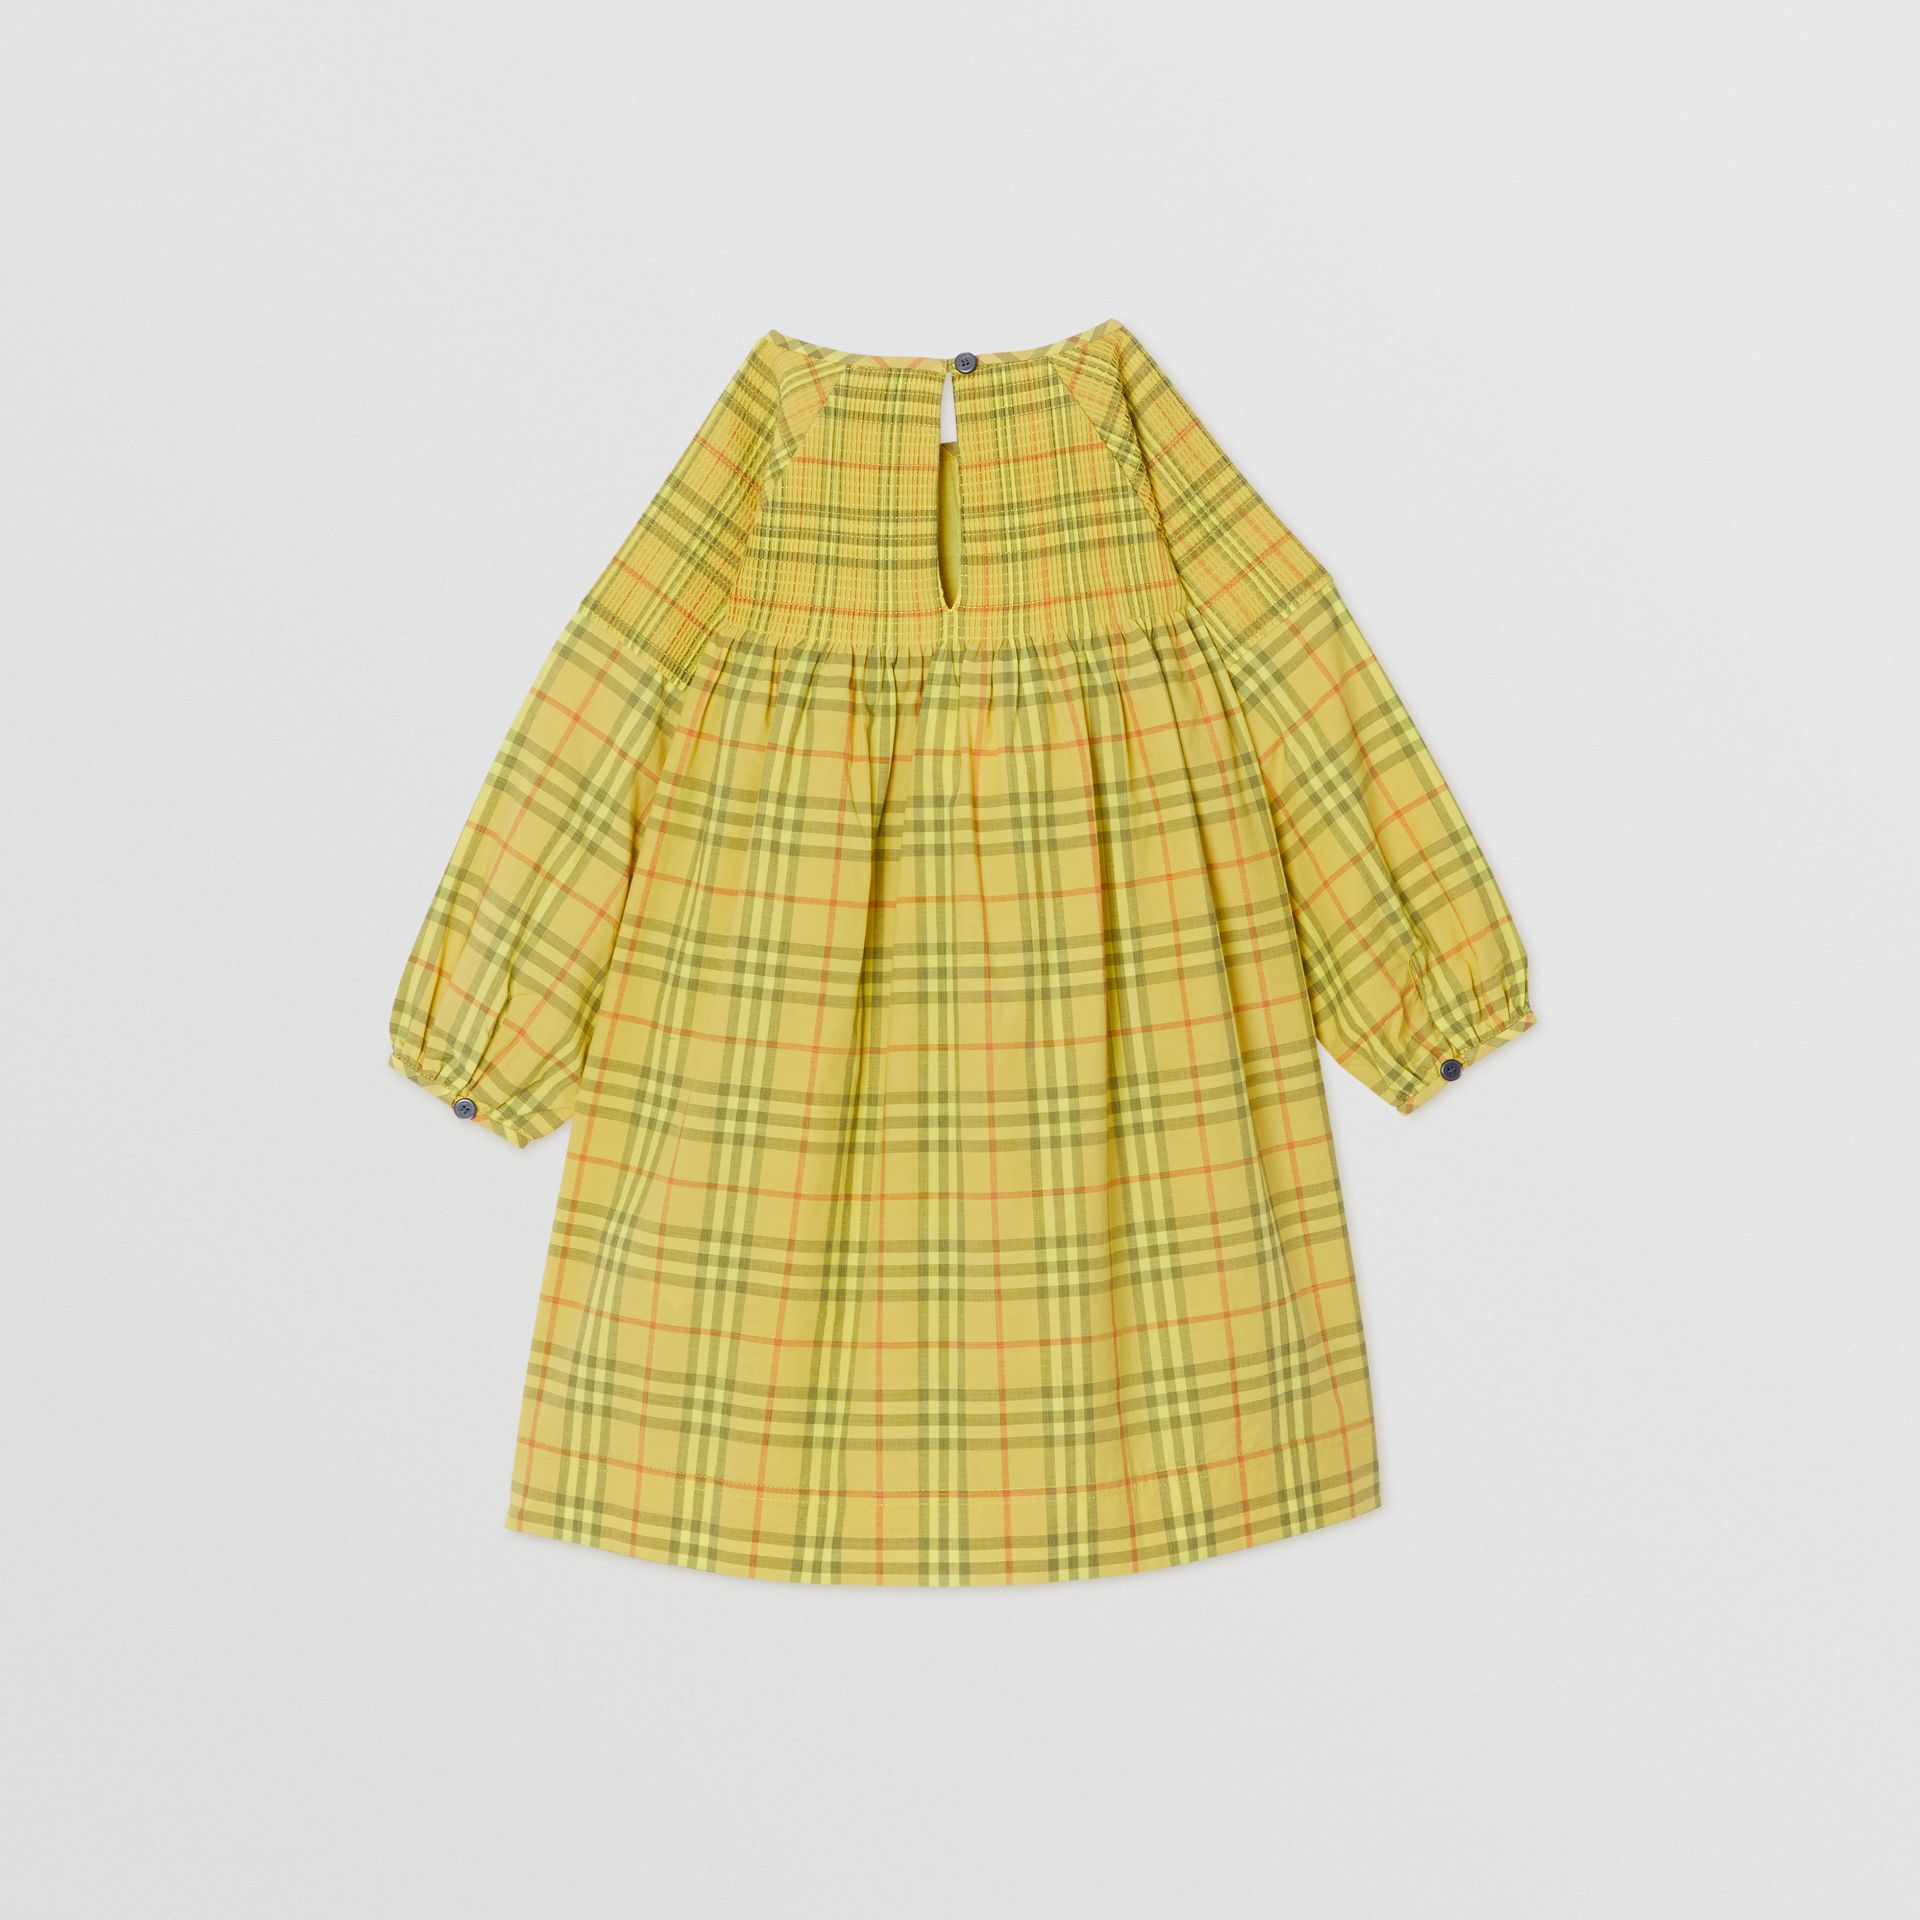 Robe en coton à motif check et smocks (Jaune Agrume) - Fille | Burberry - photo de la galerie 3